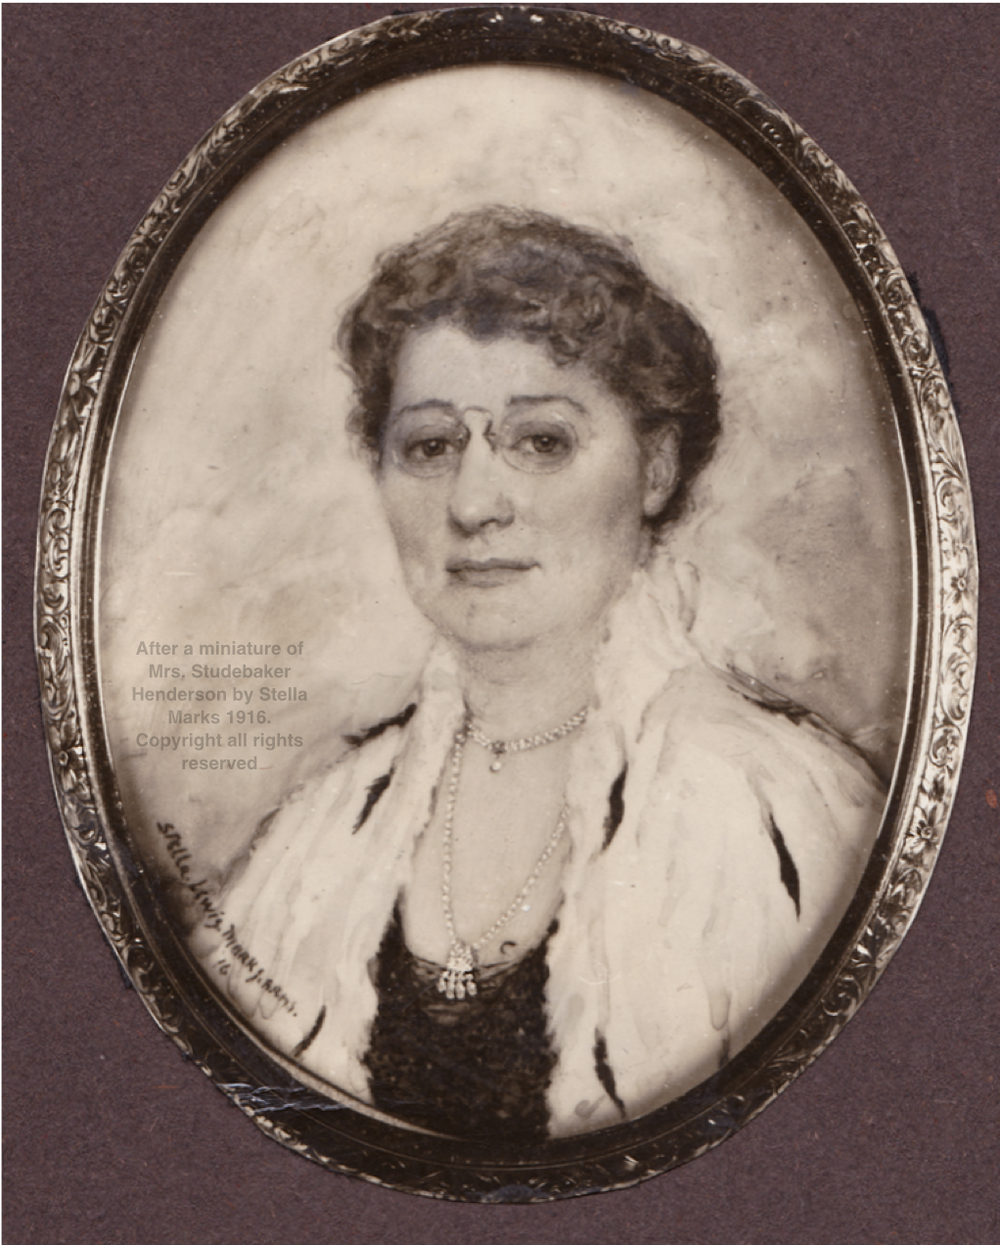 After a miniature of Mrs. Studebaker Henderson by Stella Marks 1916. Copyright all rights reserved